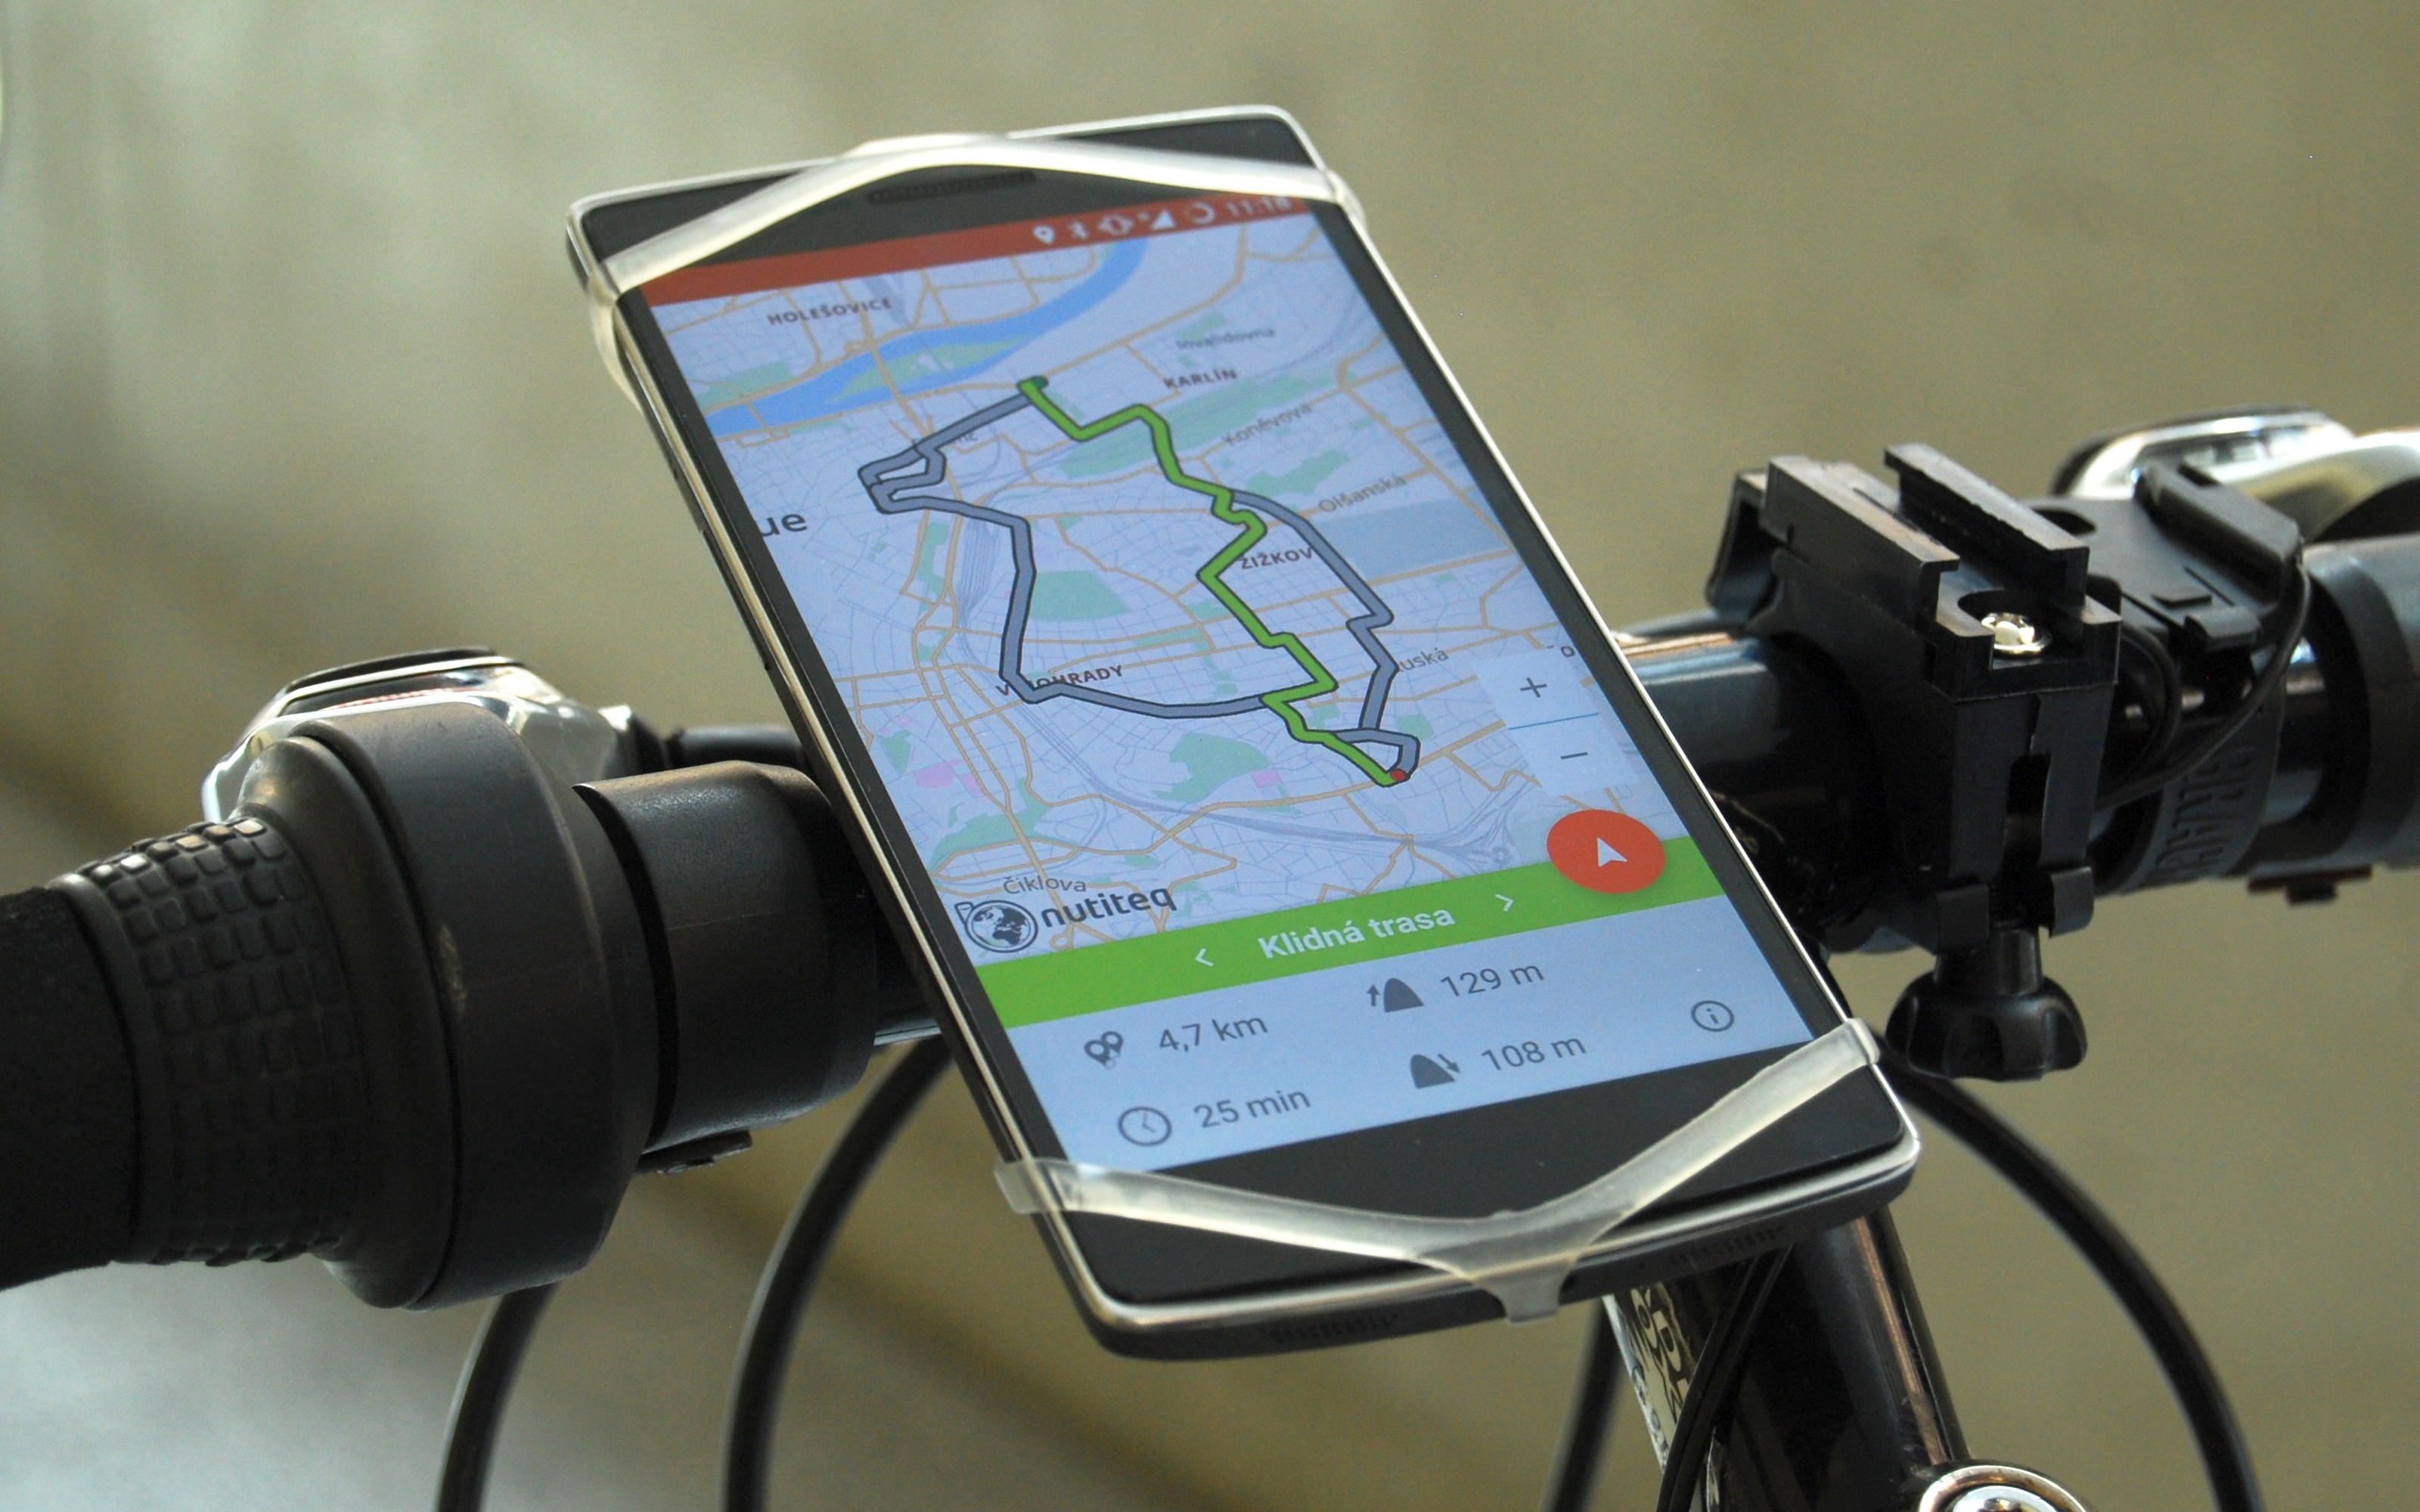 There are some other decent cycling apps, but in our opinion none of them really can equal UrbanCyclers. One of the reasons why we are able to provide unique features is our extensive experience gained during university research on smart technology for transport and mobility. That's why we've managed to build what we believe is the world's most advanced urban cycling routing app.